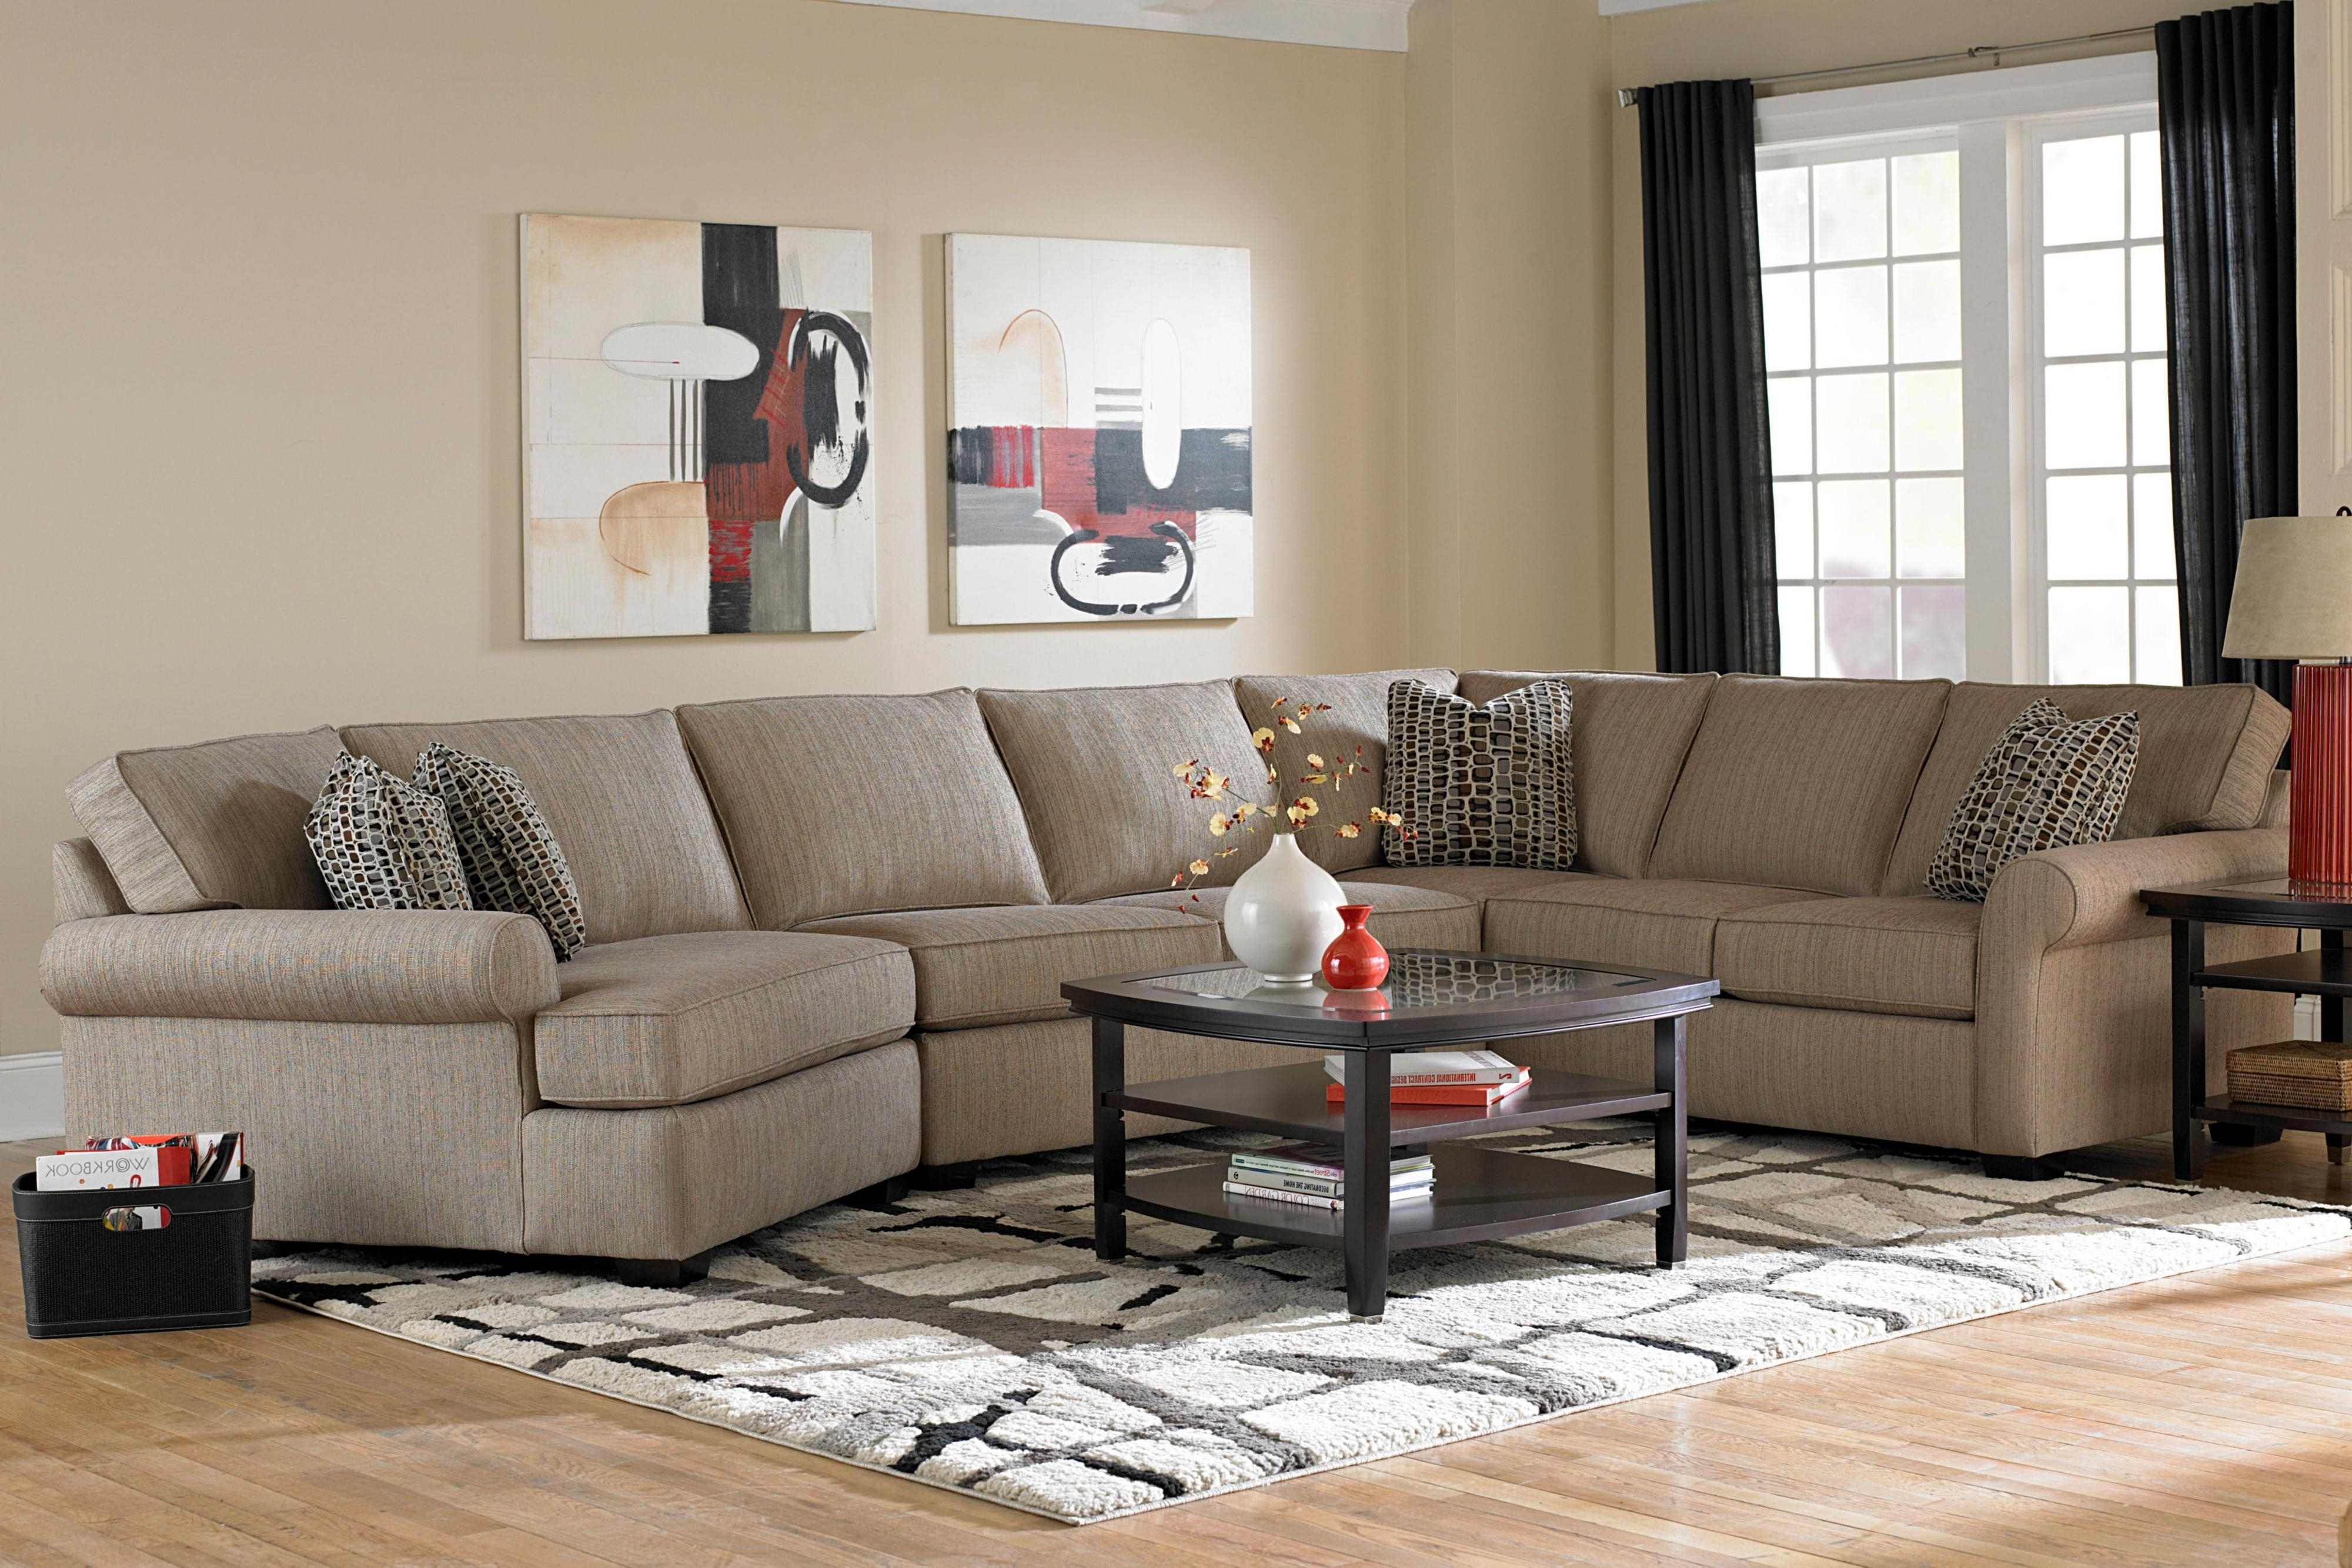 Trendy Broyhill Furniture Ethan Transitional Sectional Sofa With Right For Quincy Il Sectional Sofas (View 20 of 20)